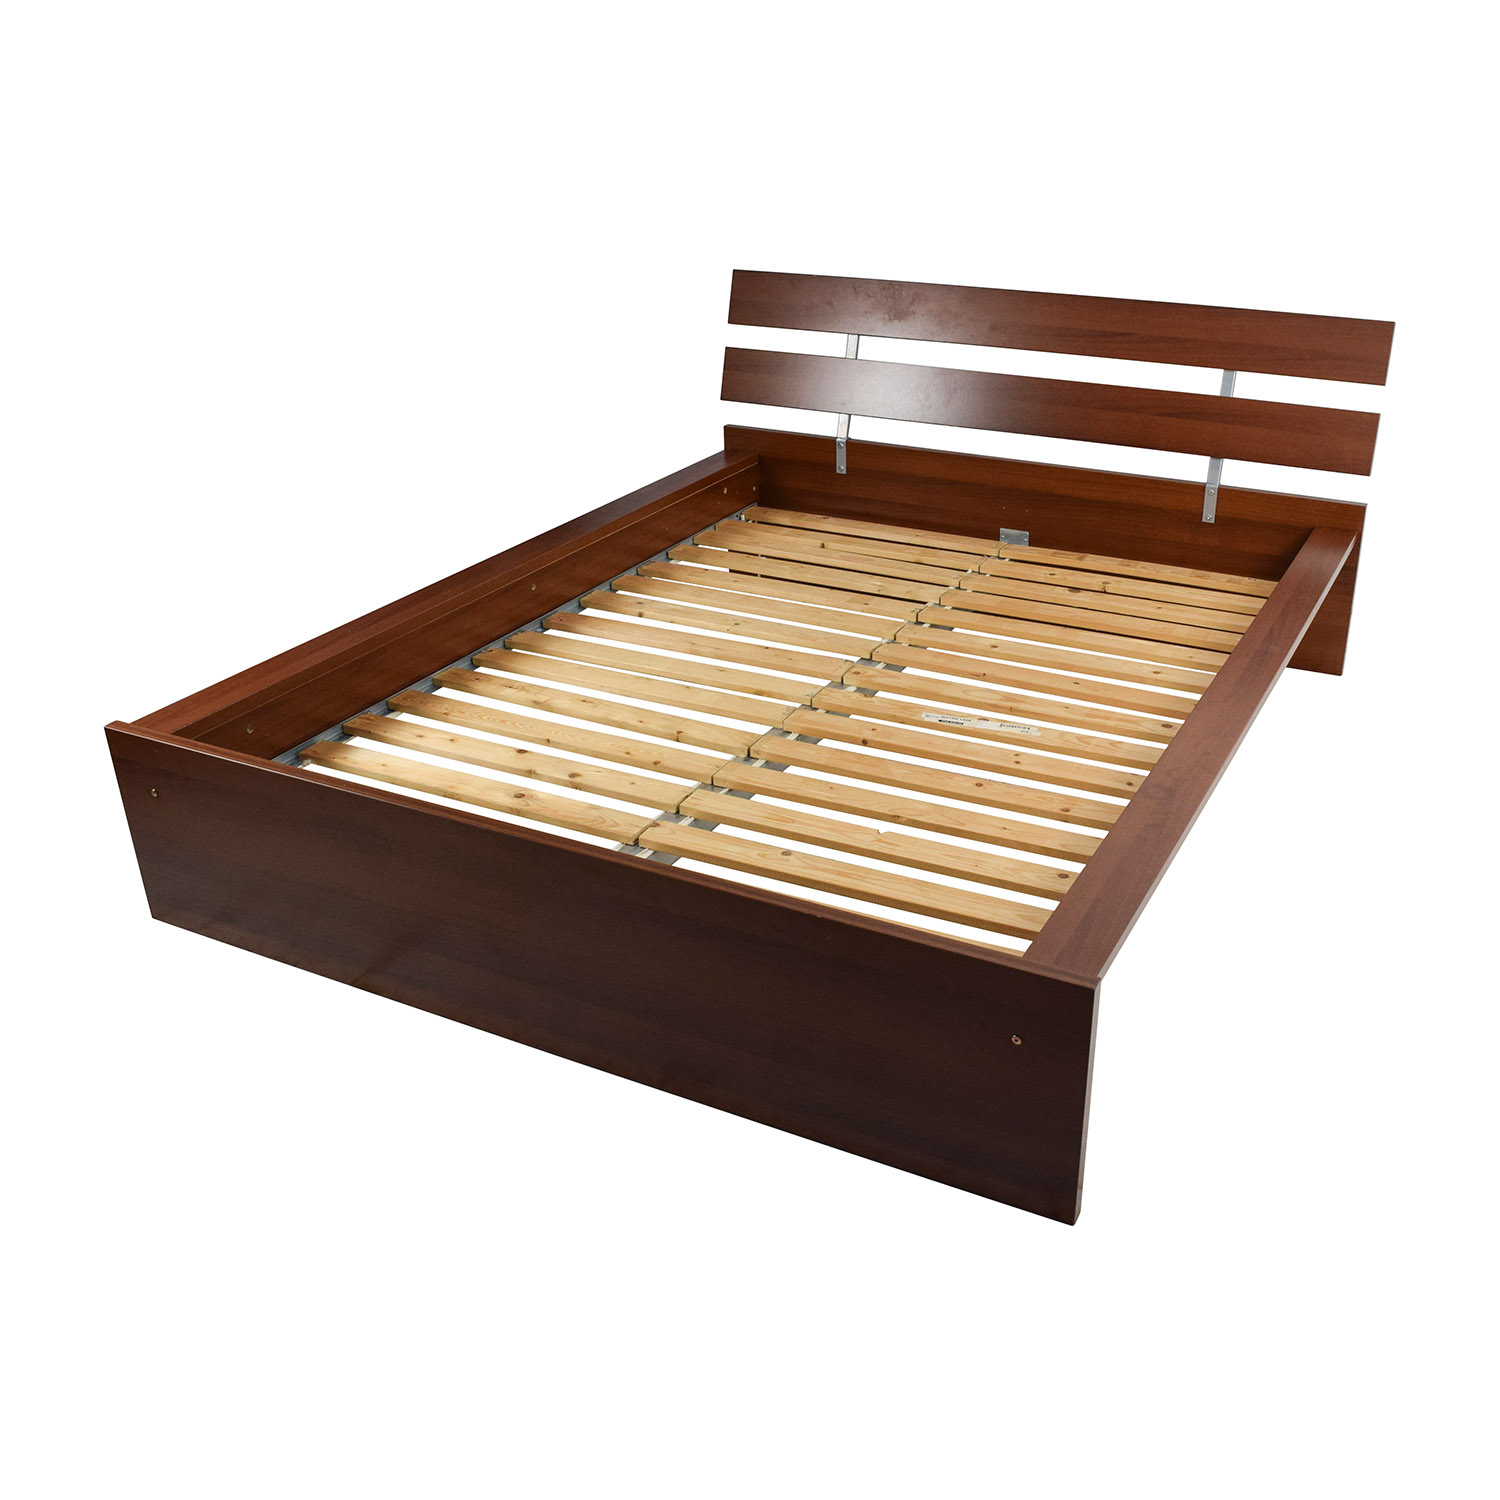 64 off ikea ikea brown queen bed frame beds for Ikea mattress frame